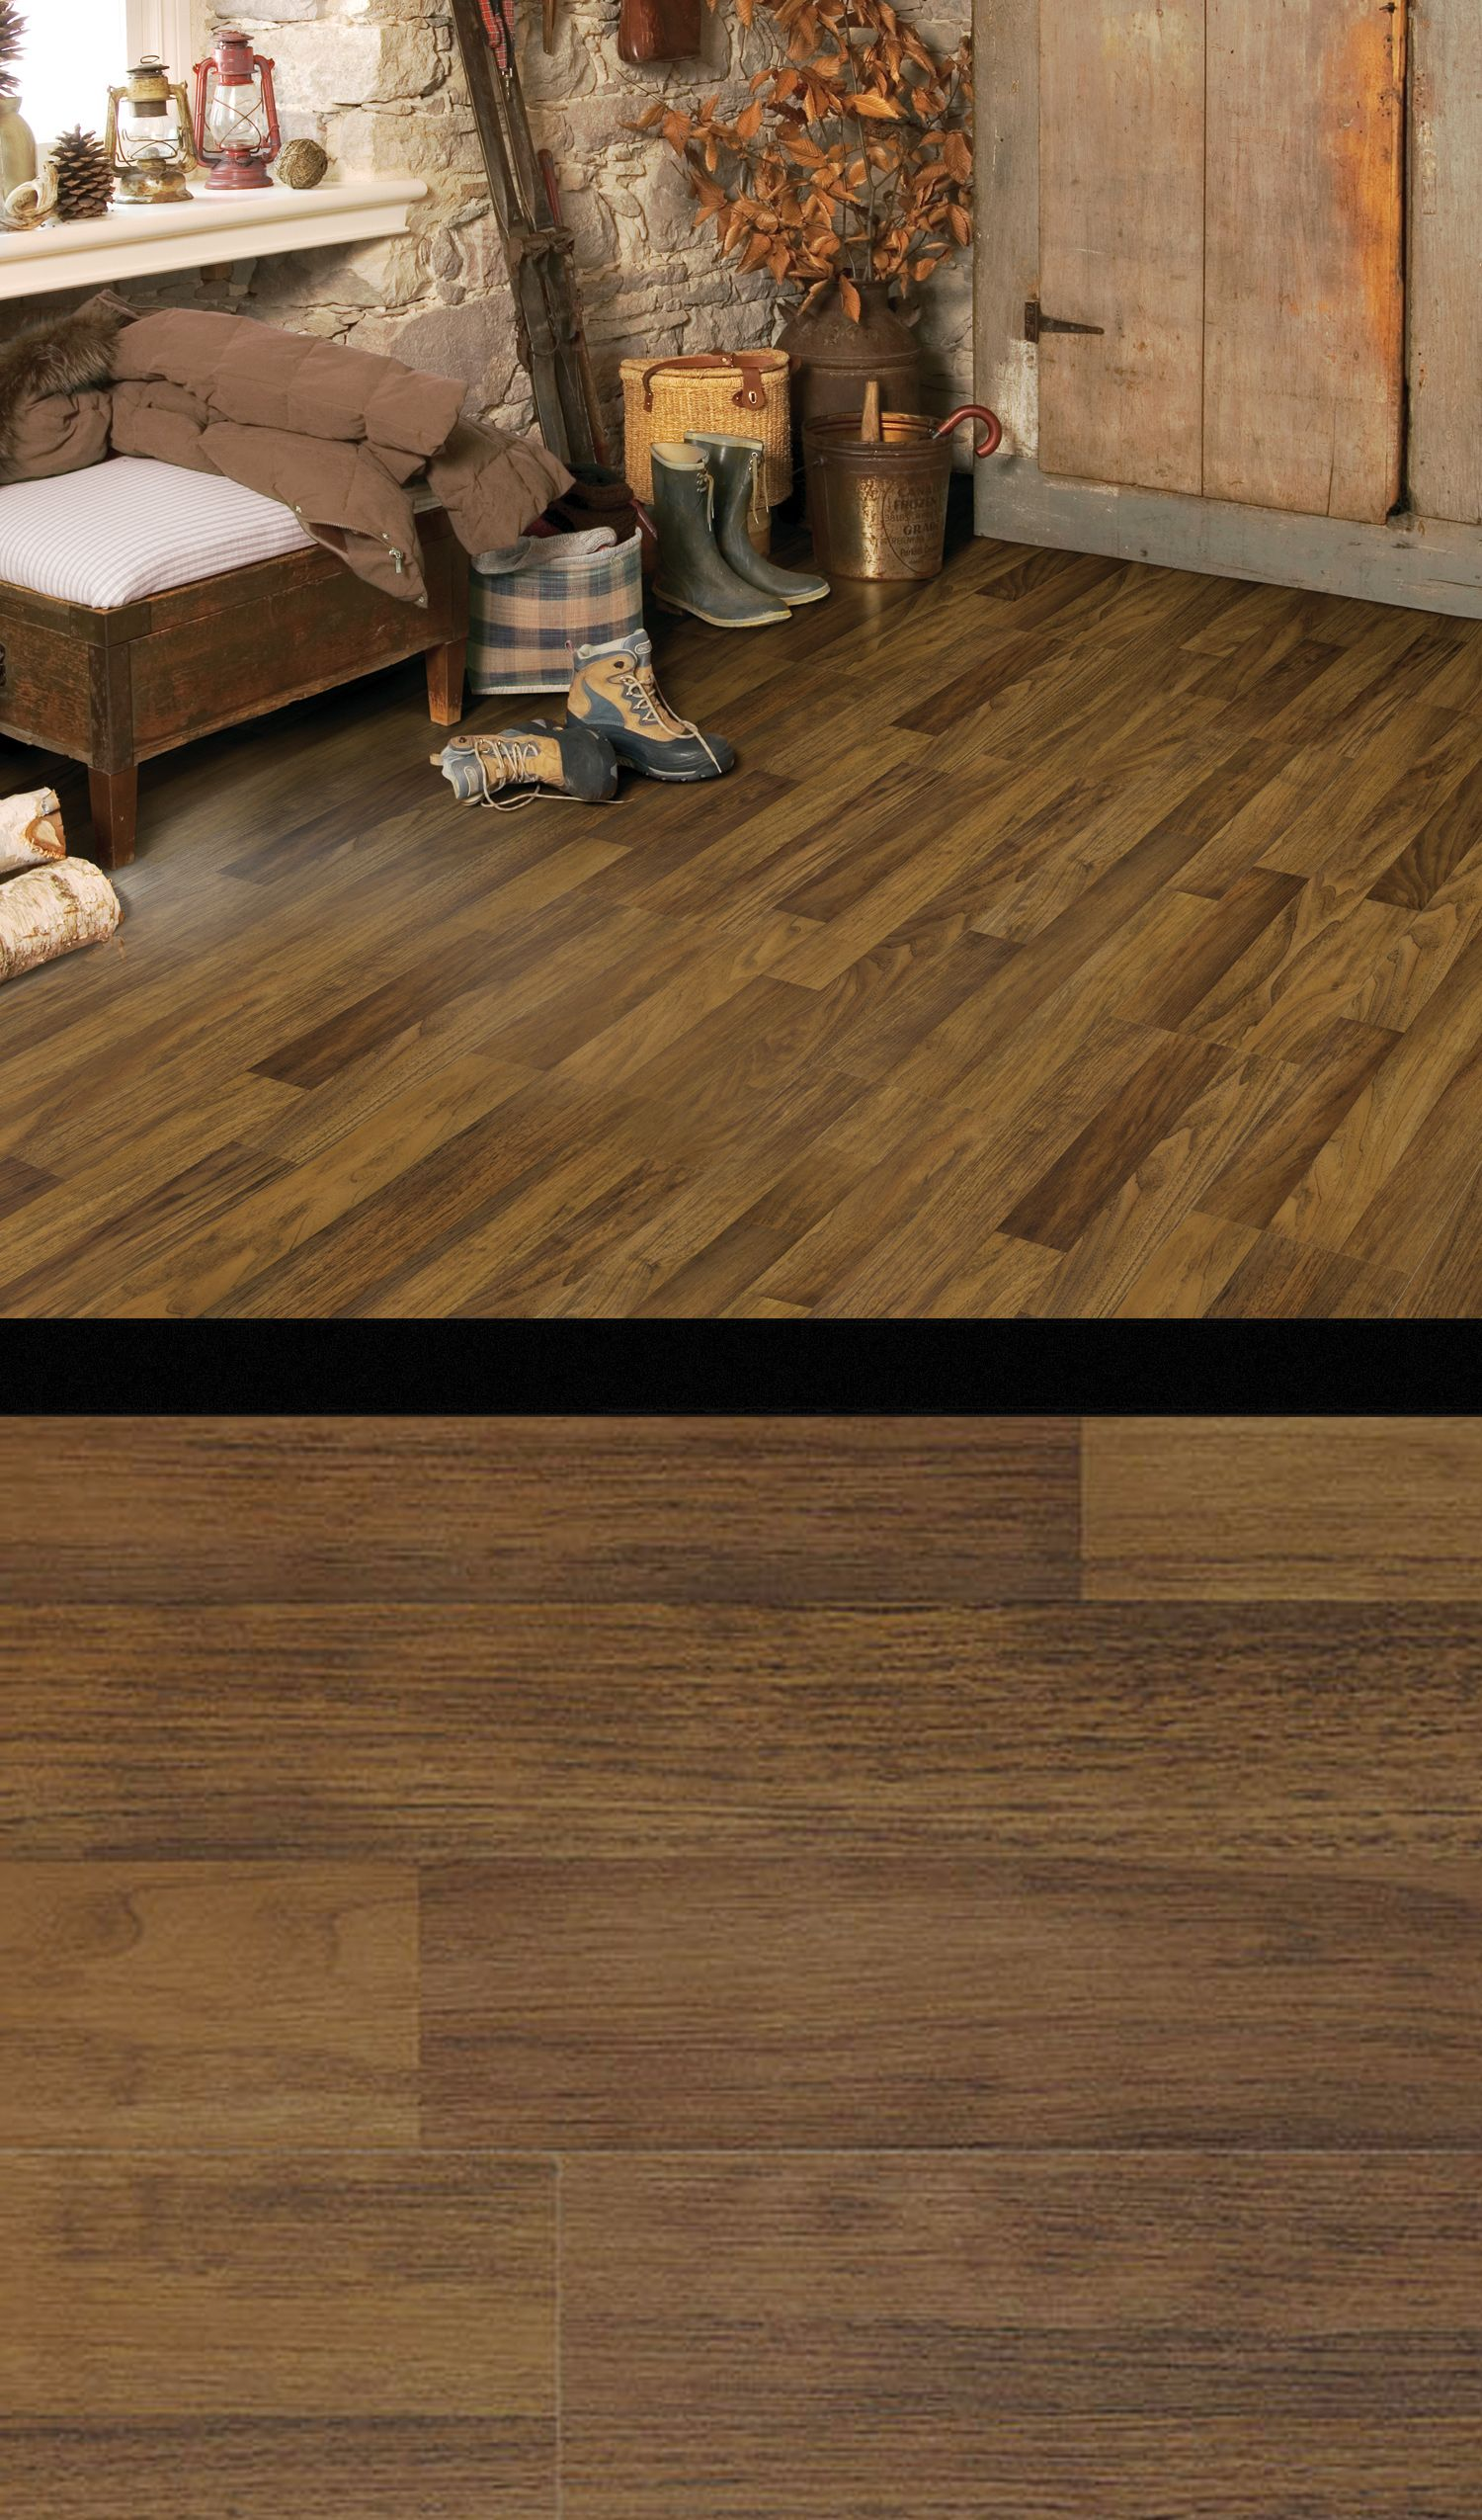 Suitable for floors and walls rapture glazed porcelain tile lends suitable for floors and walls rapture glazed porcelain tile lends a contemporary feel to any dailygadgetfo Gallery